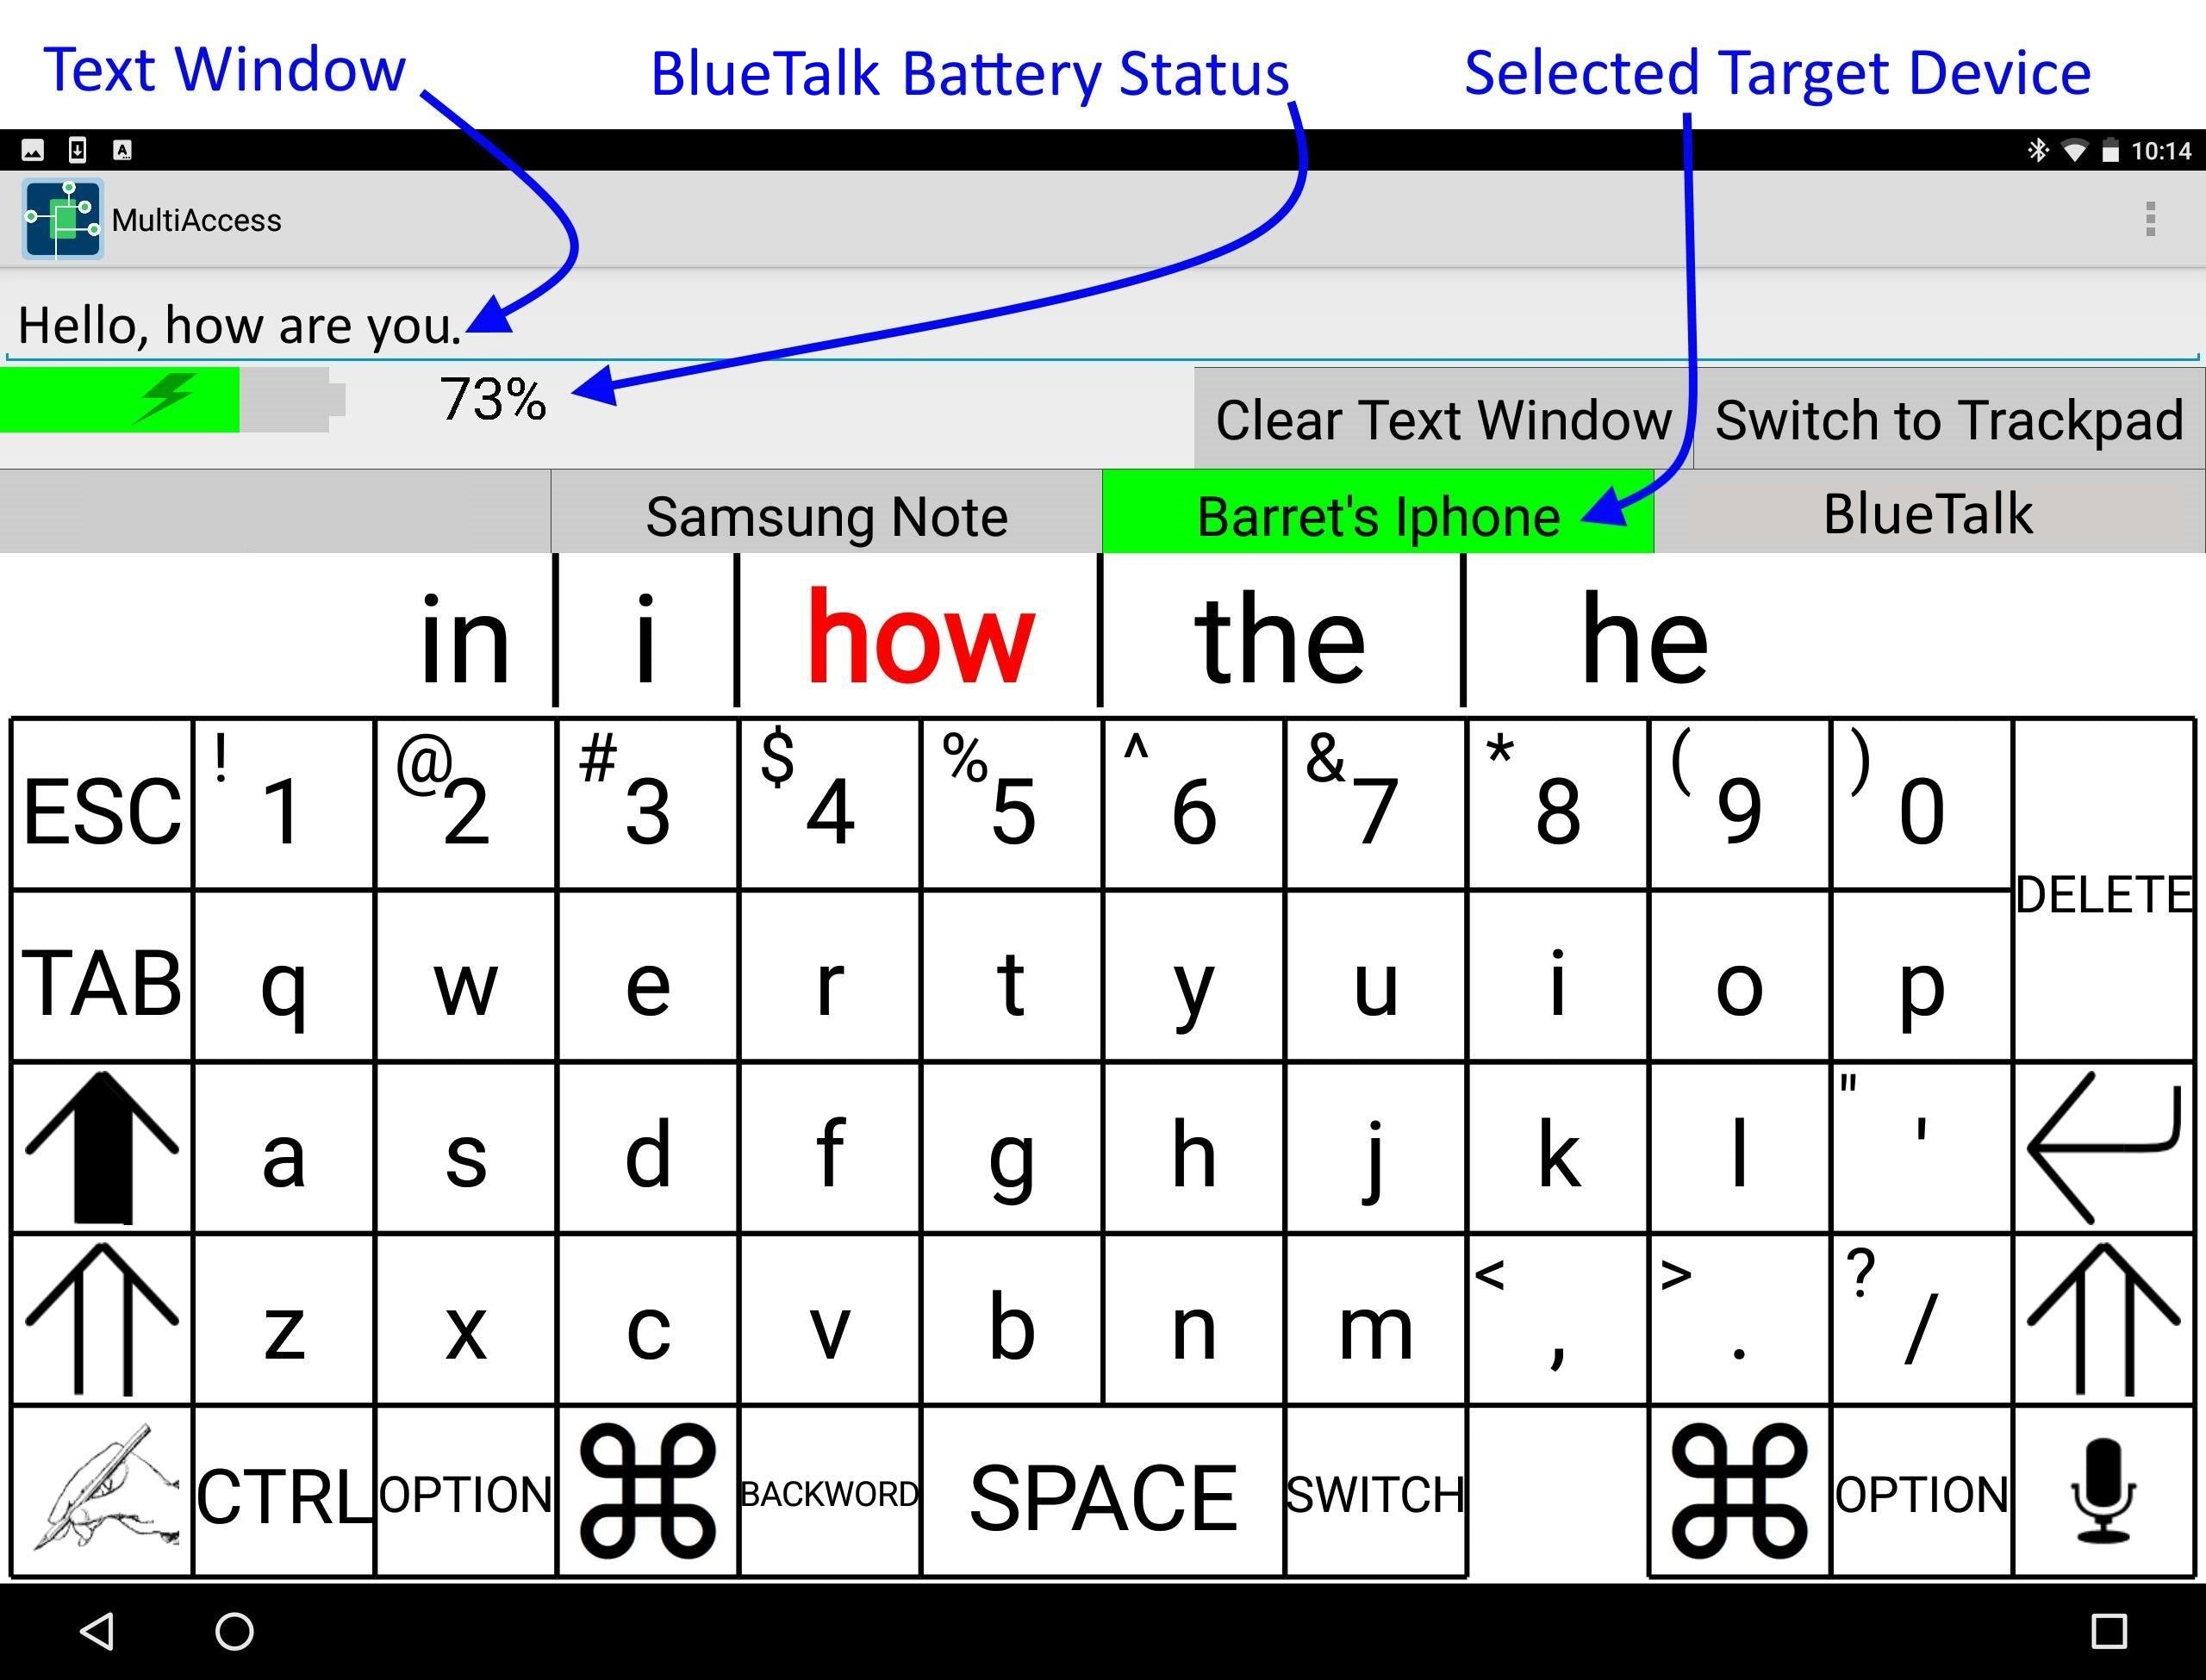 BlueTalk ScreenShot